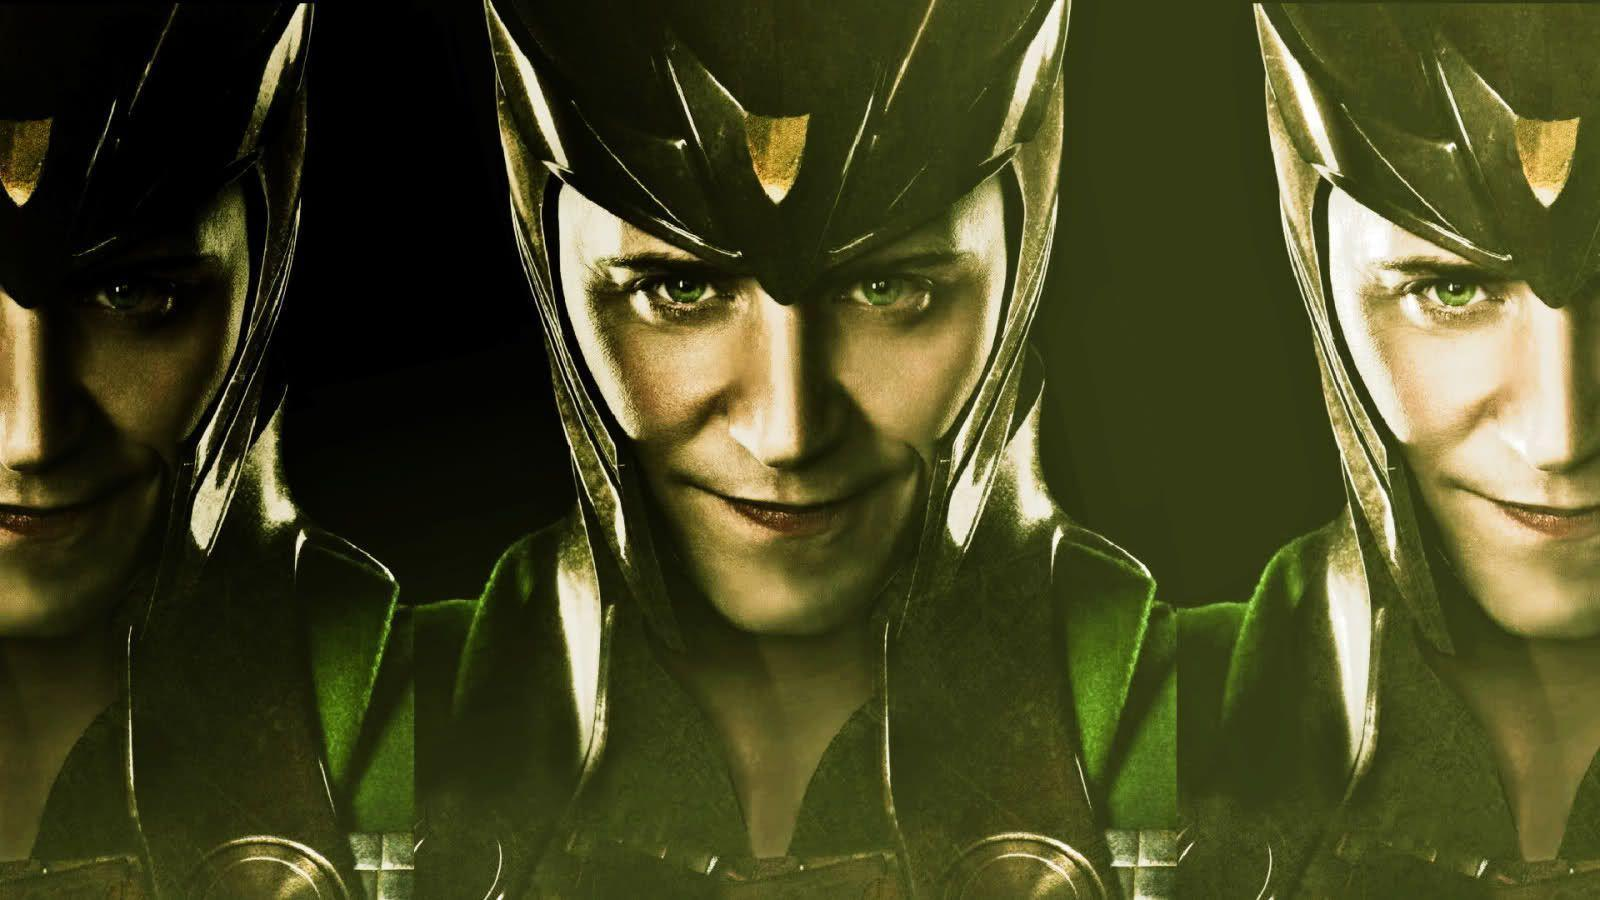 loki background for tigger - photo #26